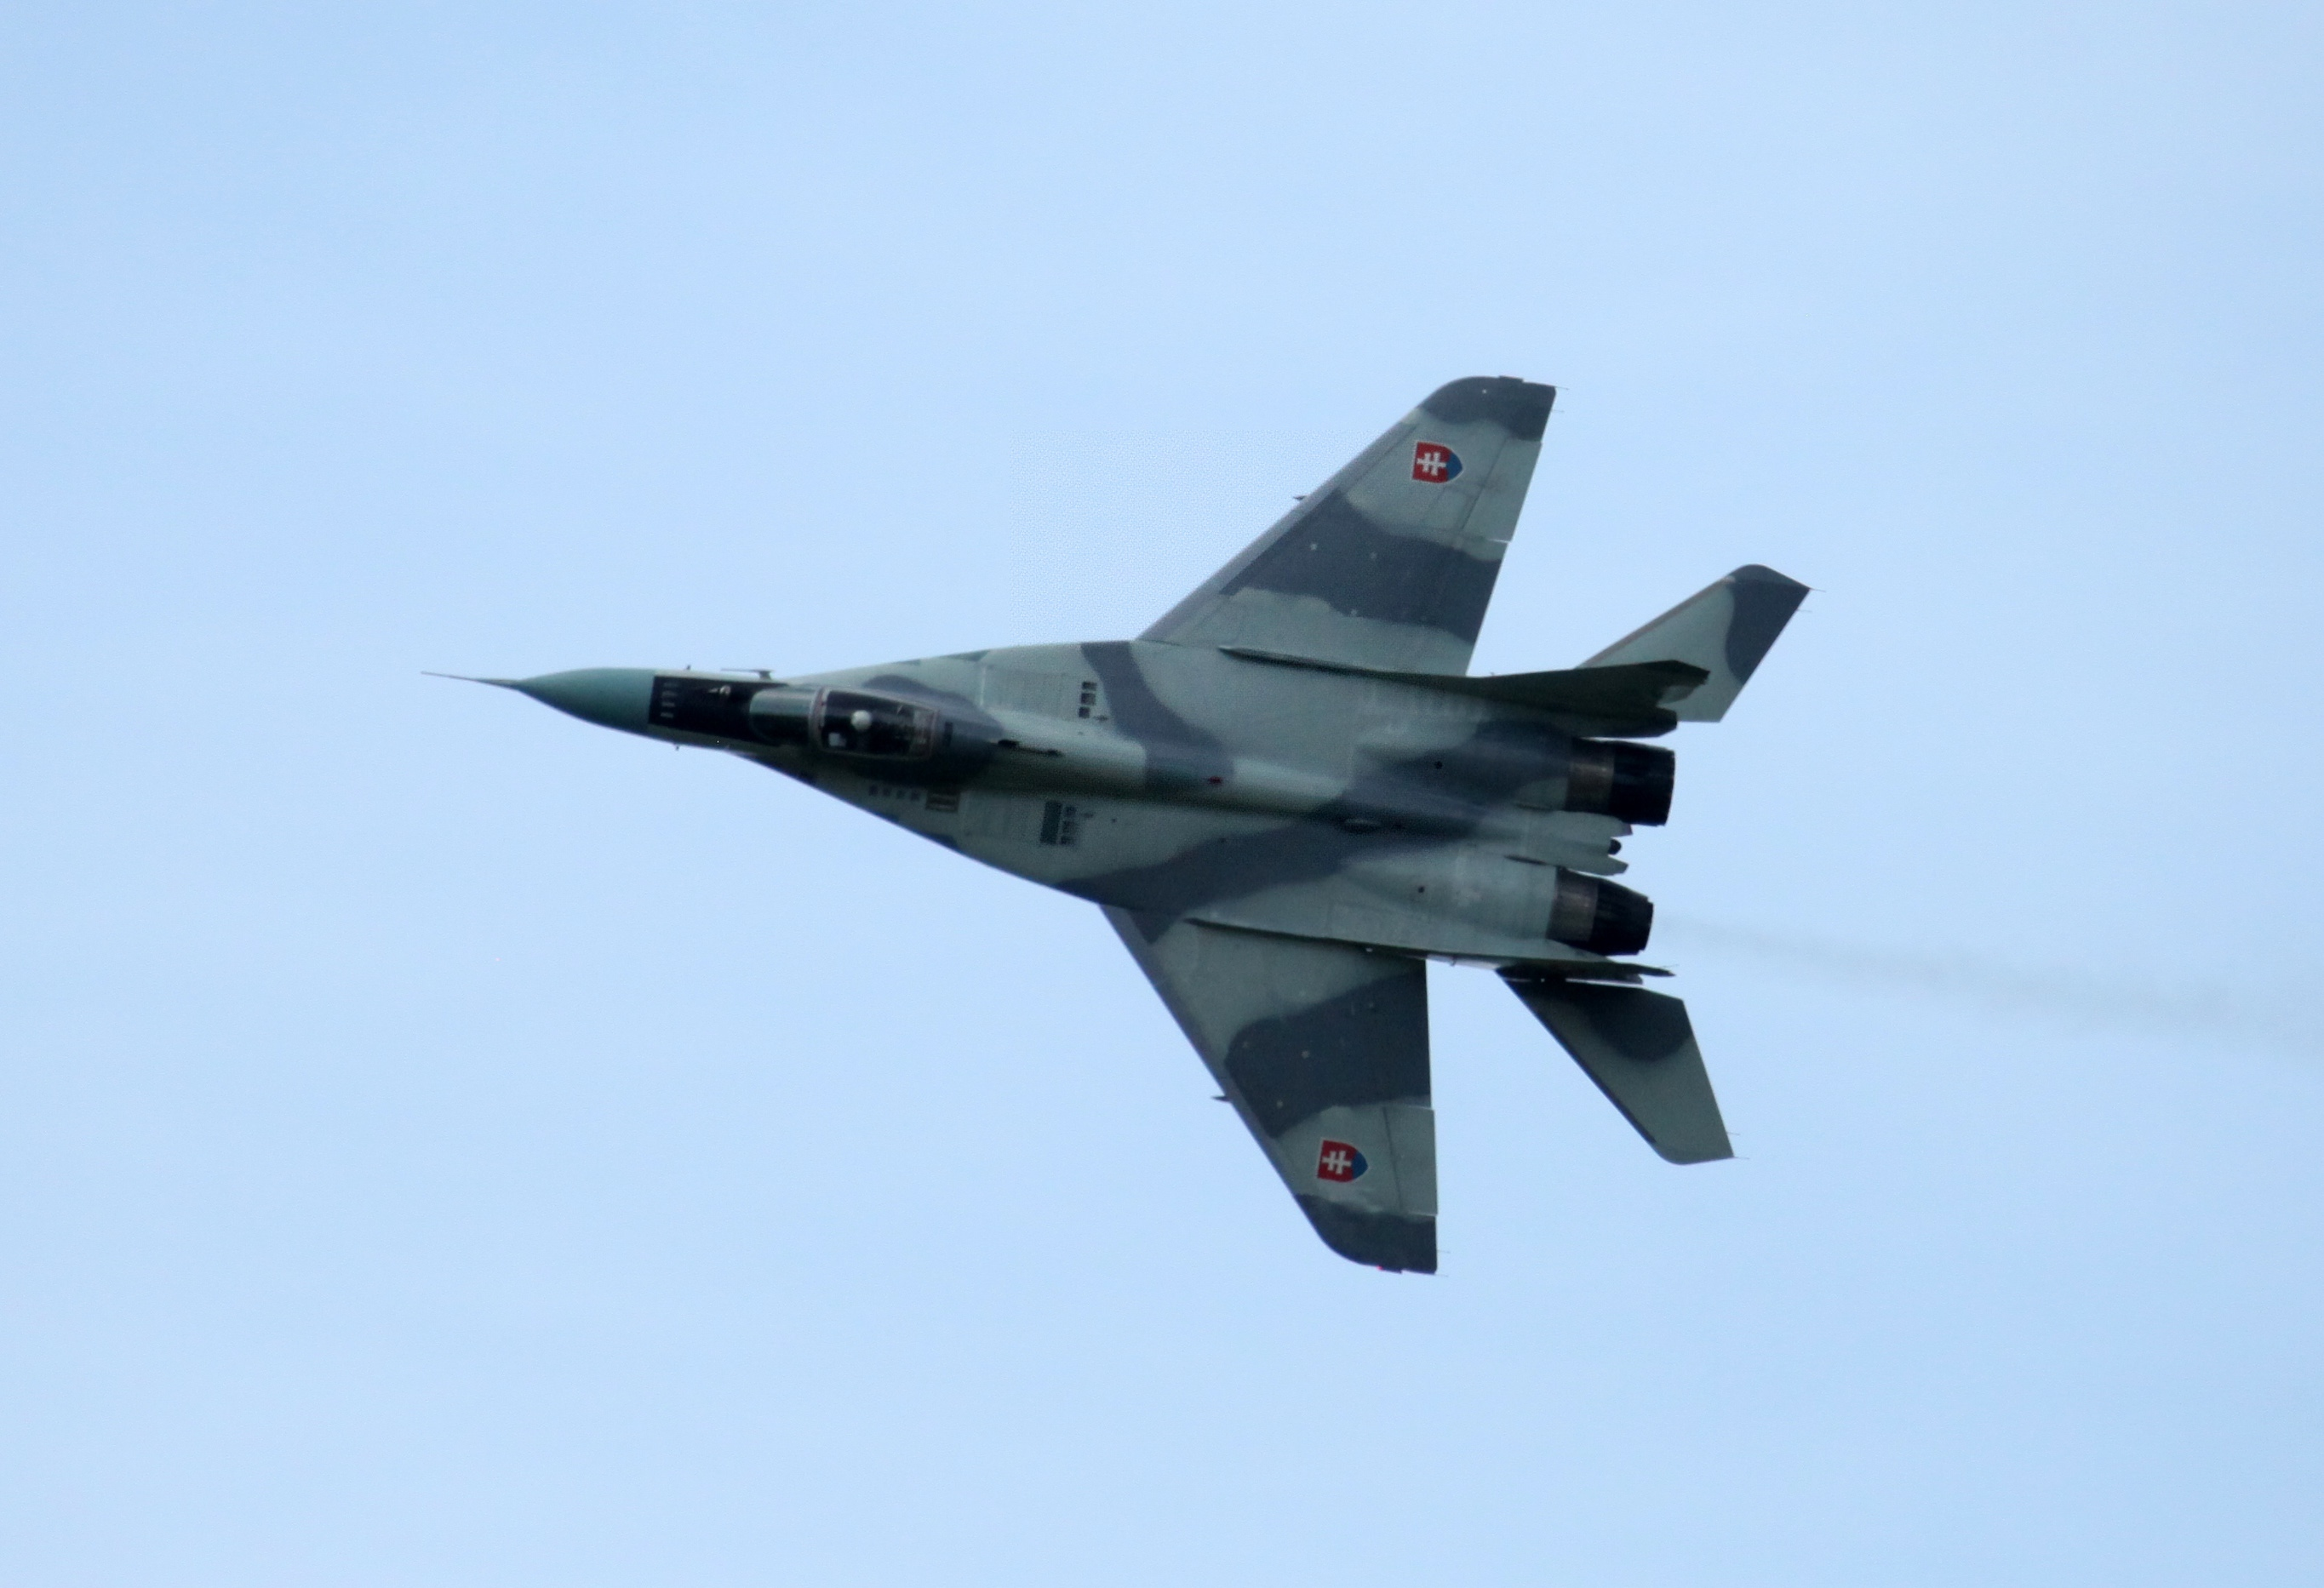 Syrian MiG-29 began to provide direct cover for Su-25 ground attack aircraft of the Russian space forces 51